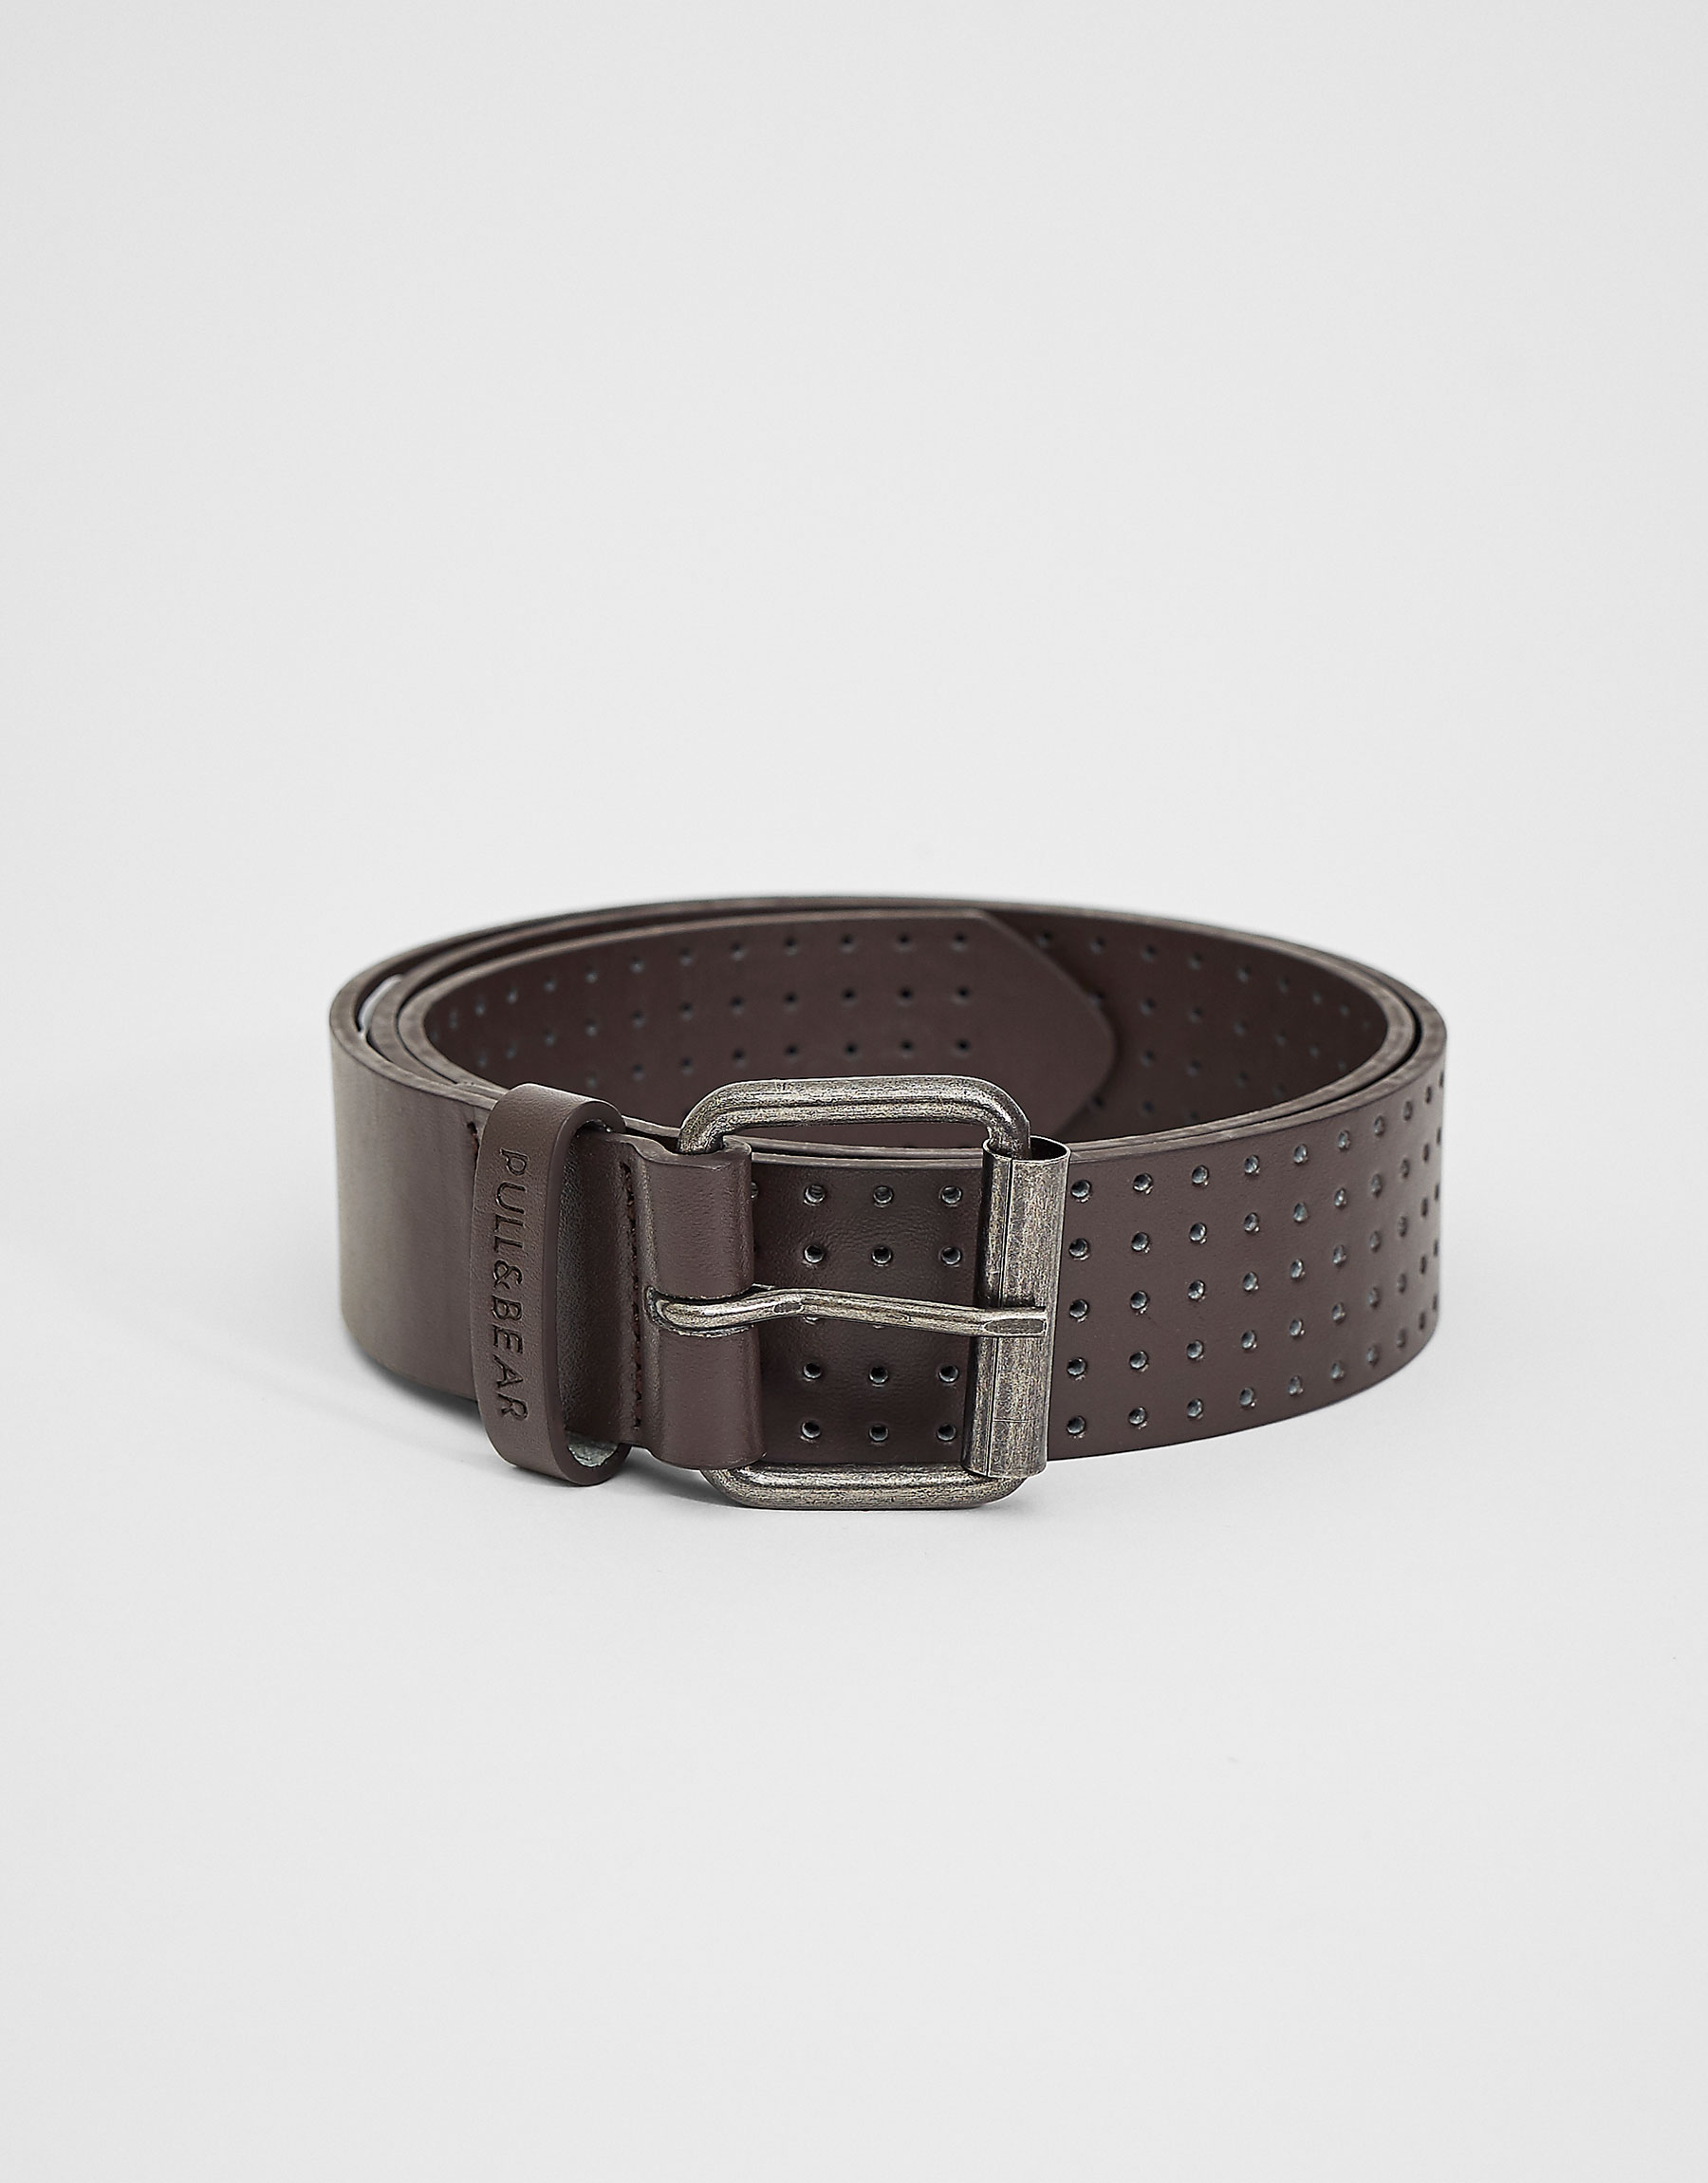 Belt with multiple perforations